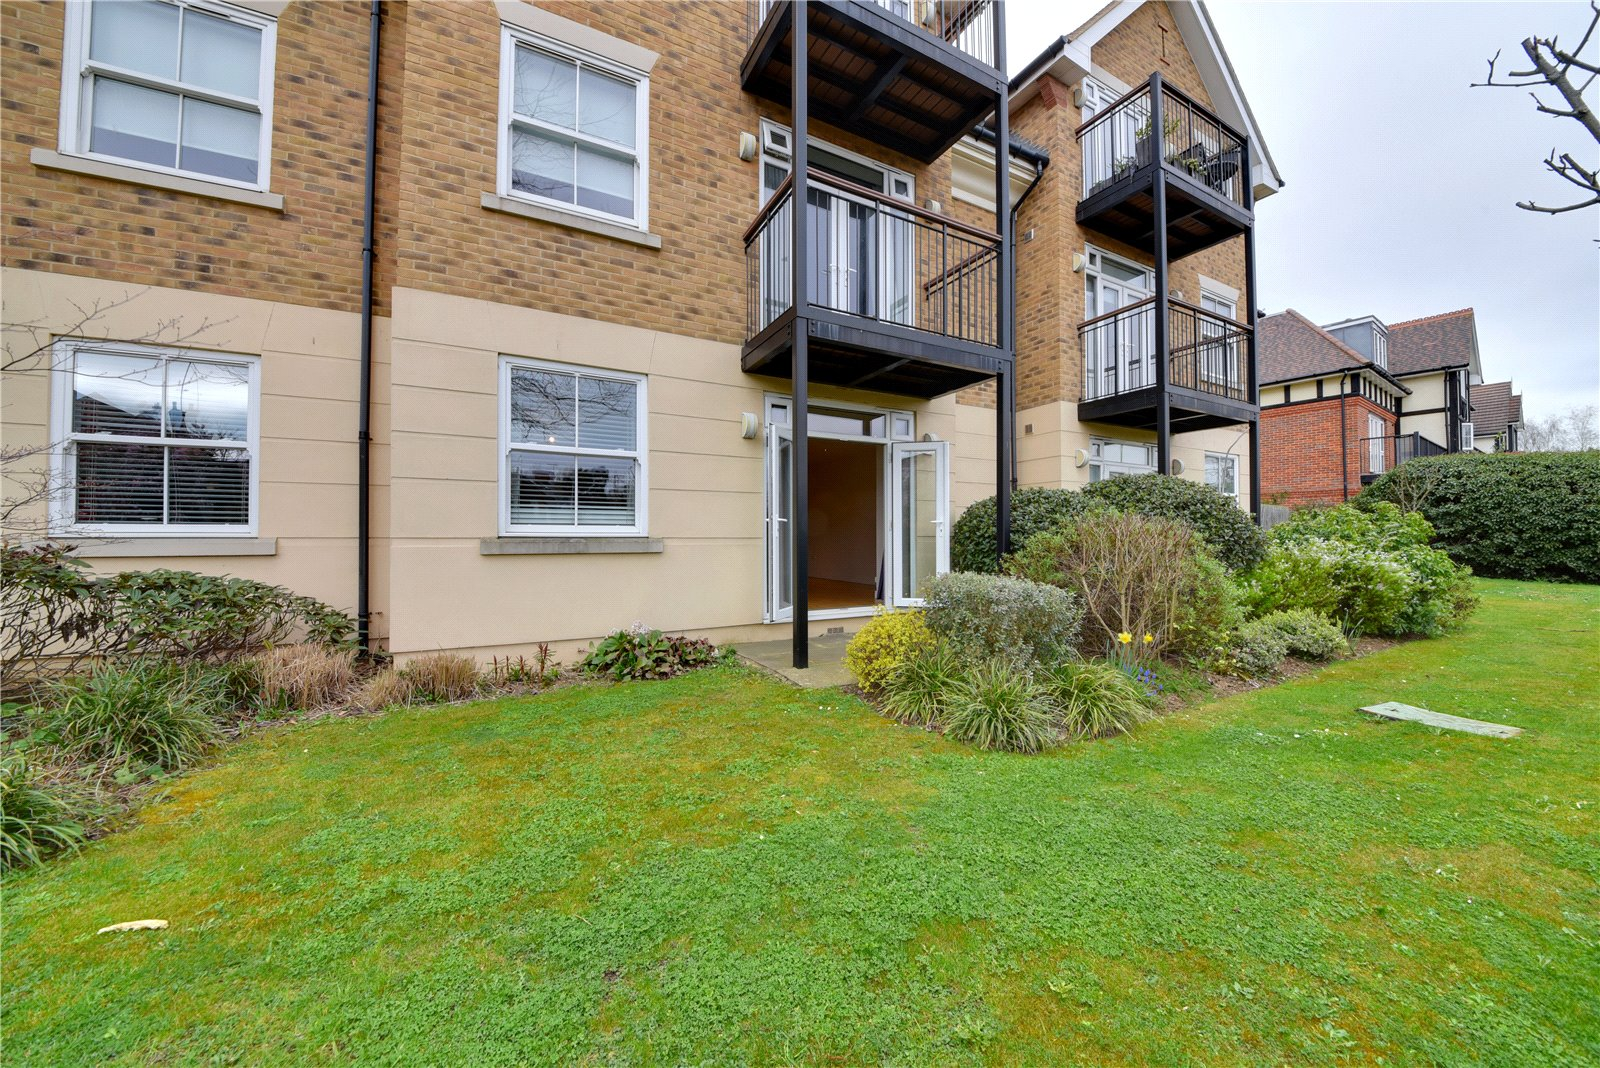 2 bed apartment for sale in Mill Hill East, NW7 1ND 4